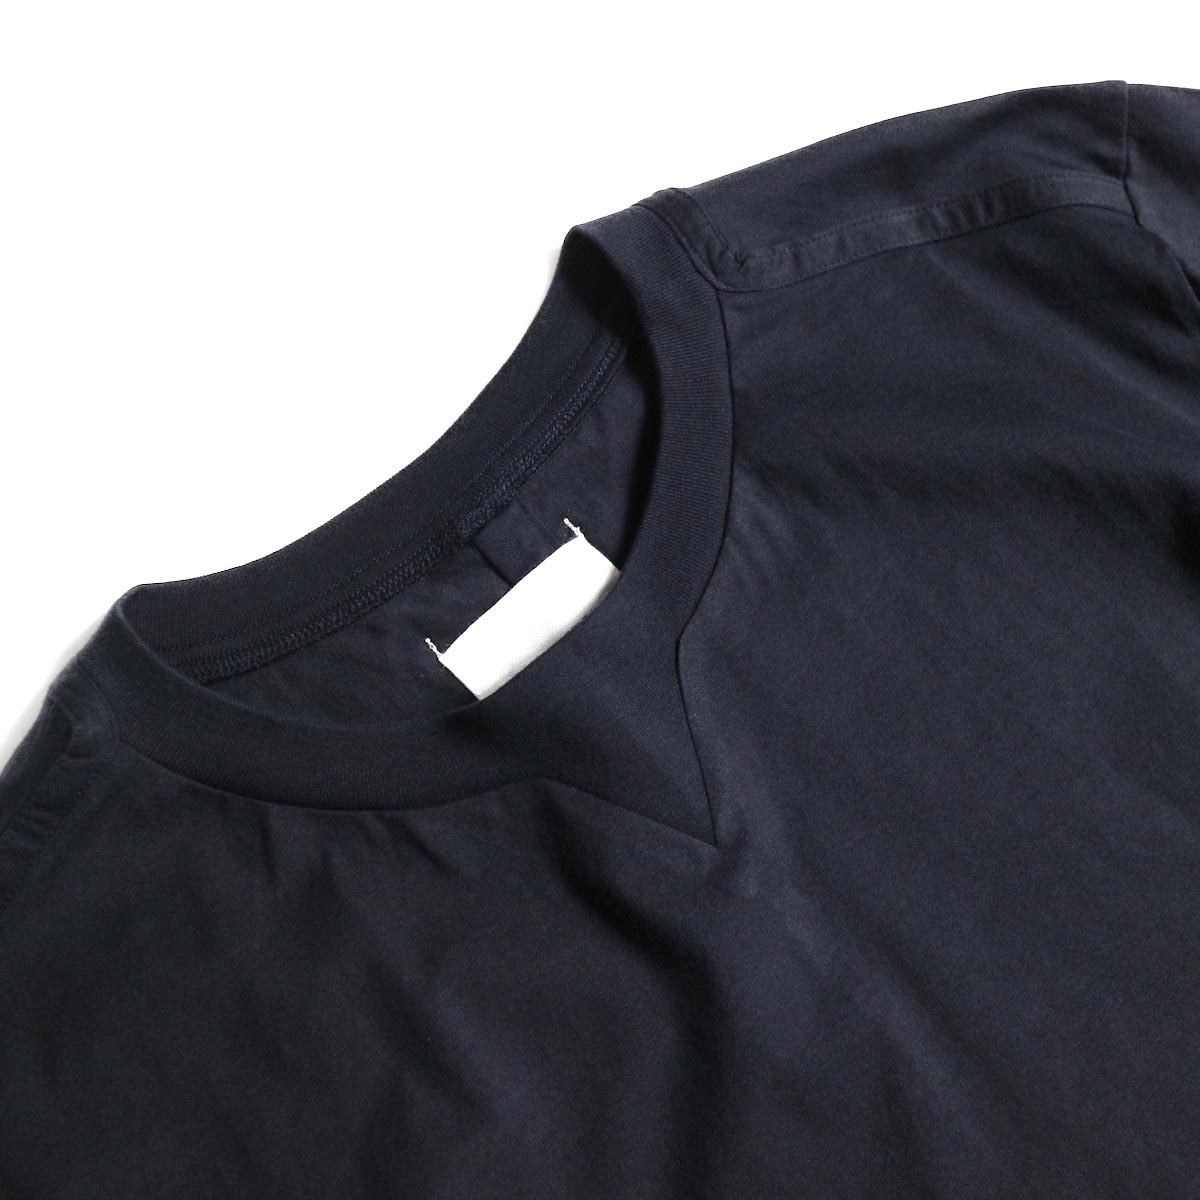 The Soloist / swc.0007a crew neck s/s tee (Midnight)ガセット